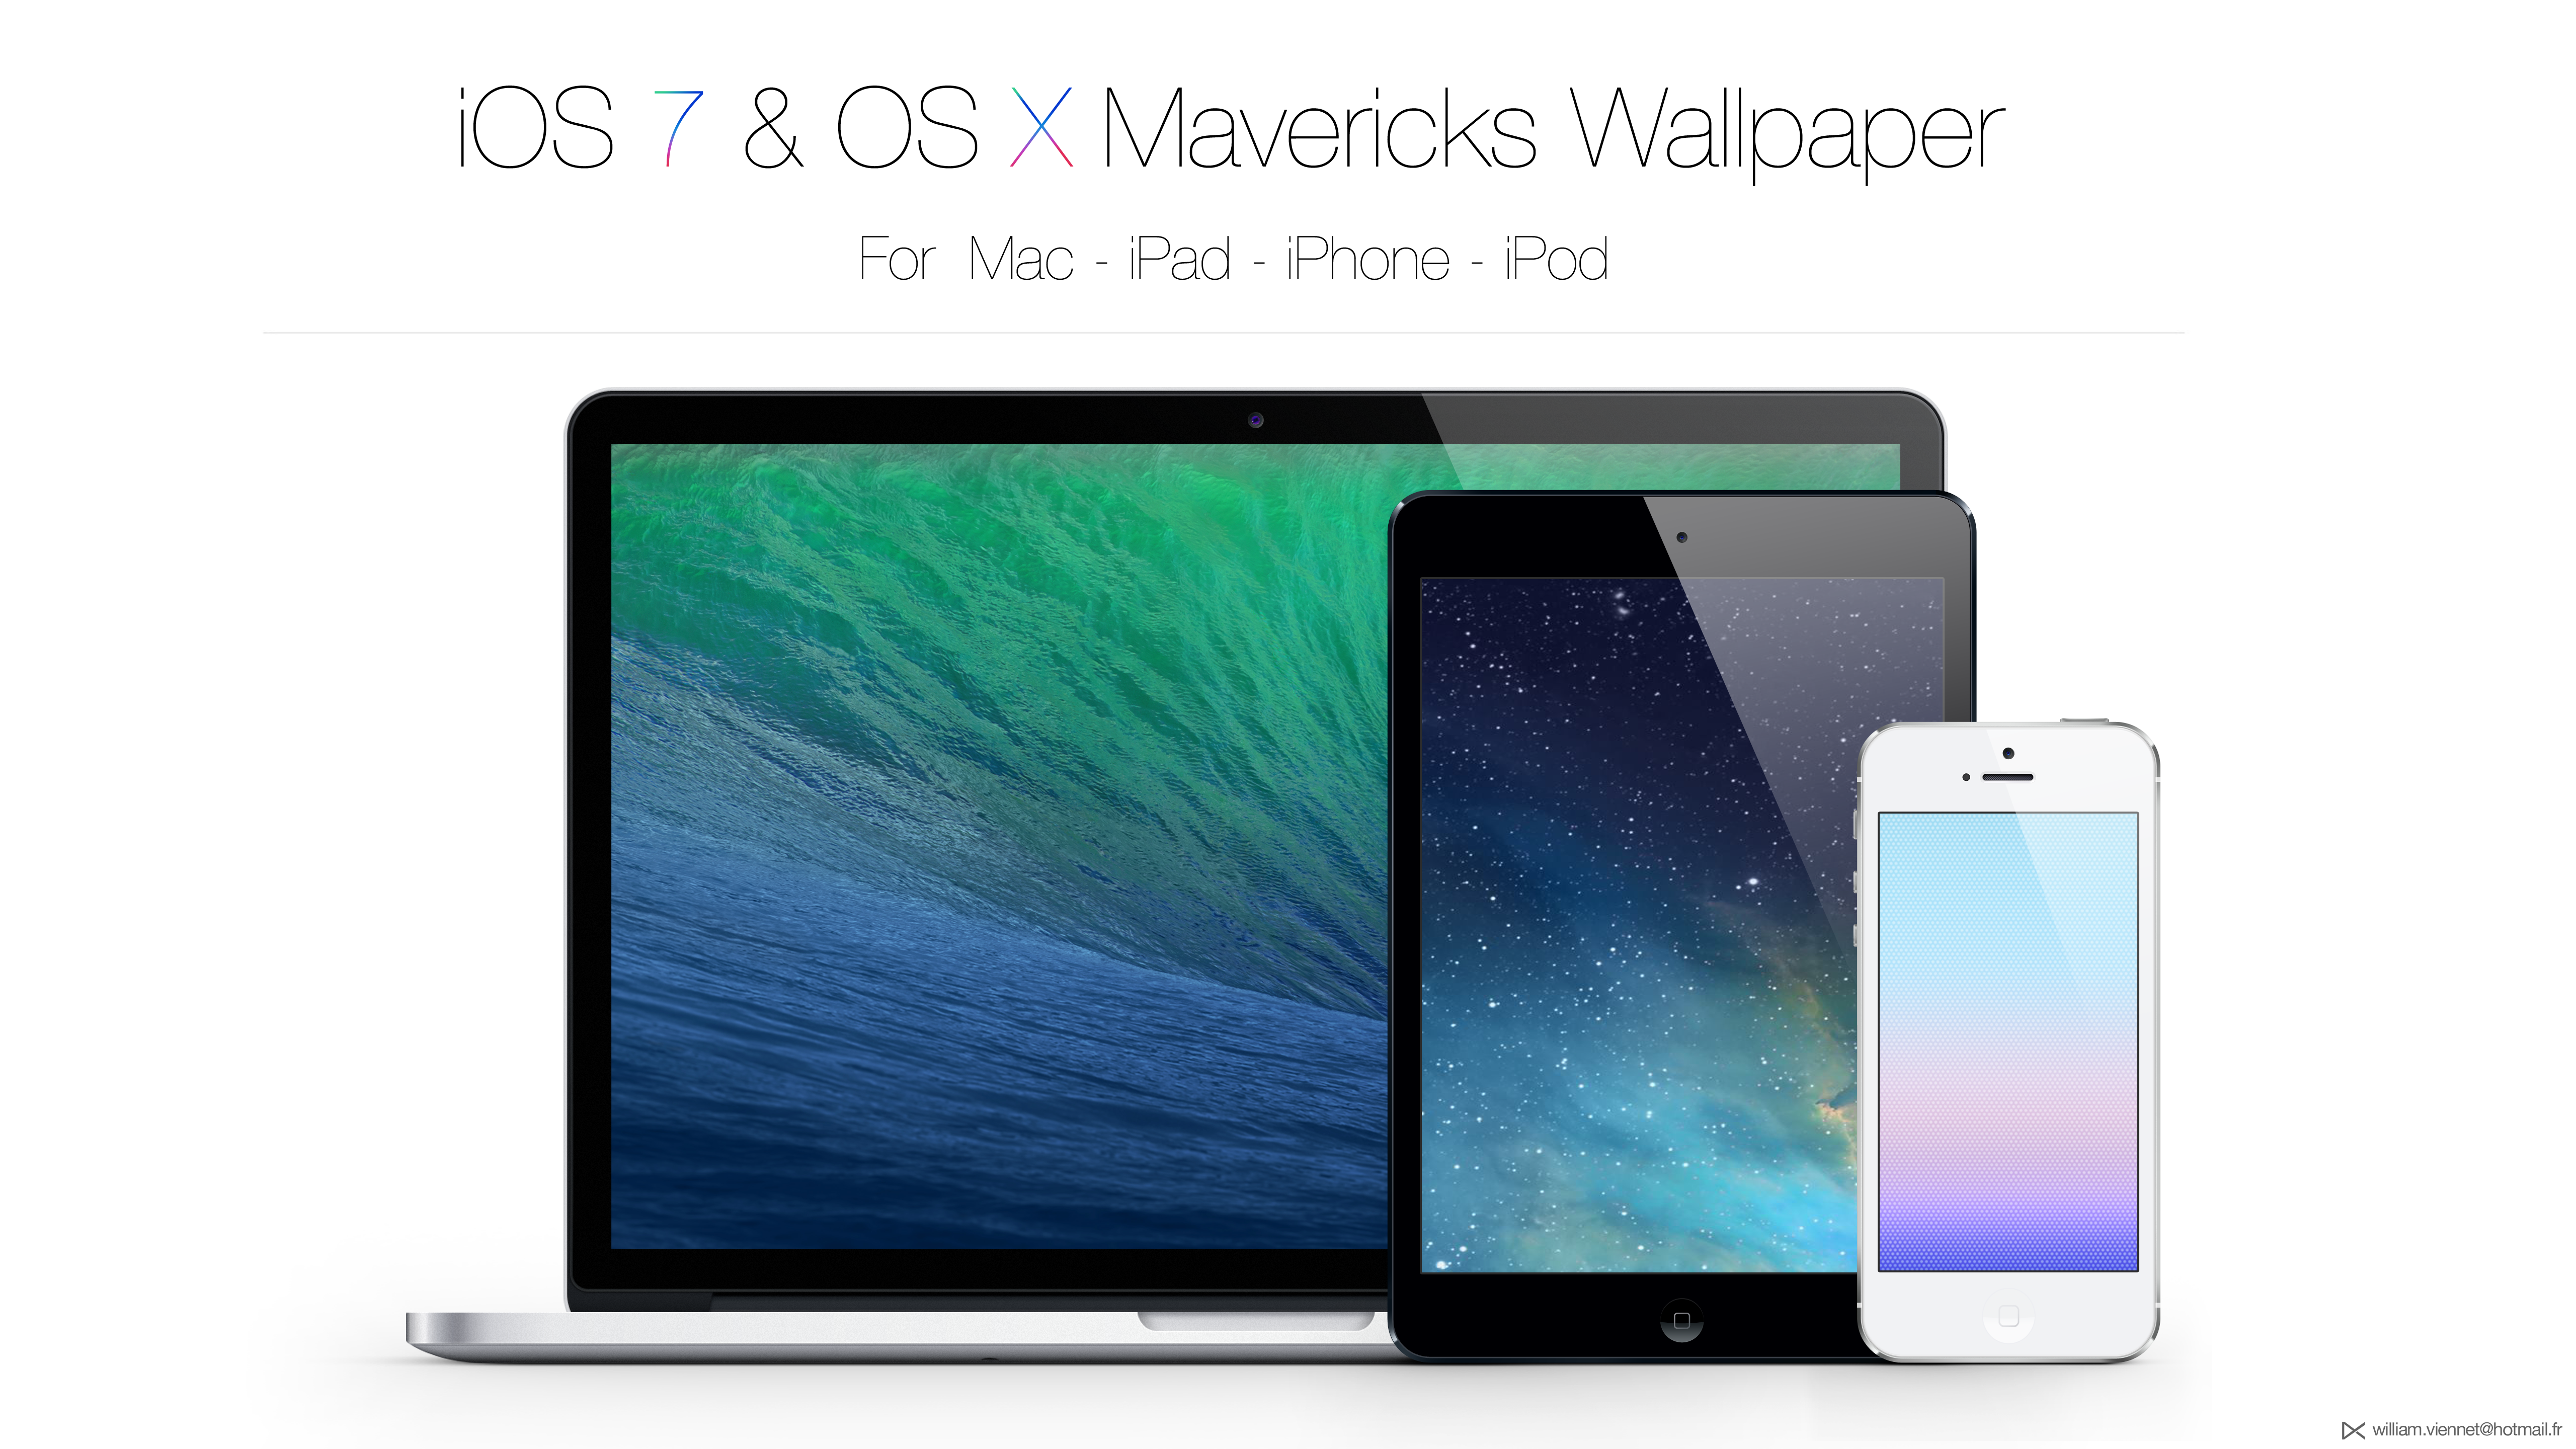 ios 7 os x mavericks wallpaper by willviennet